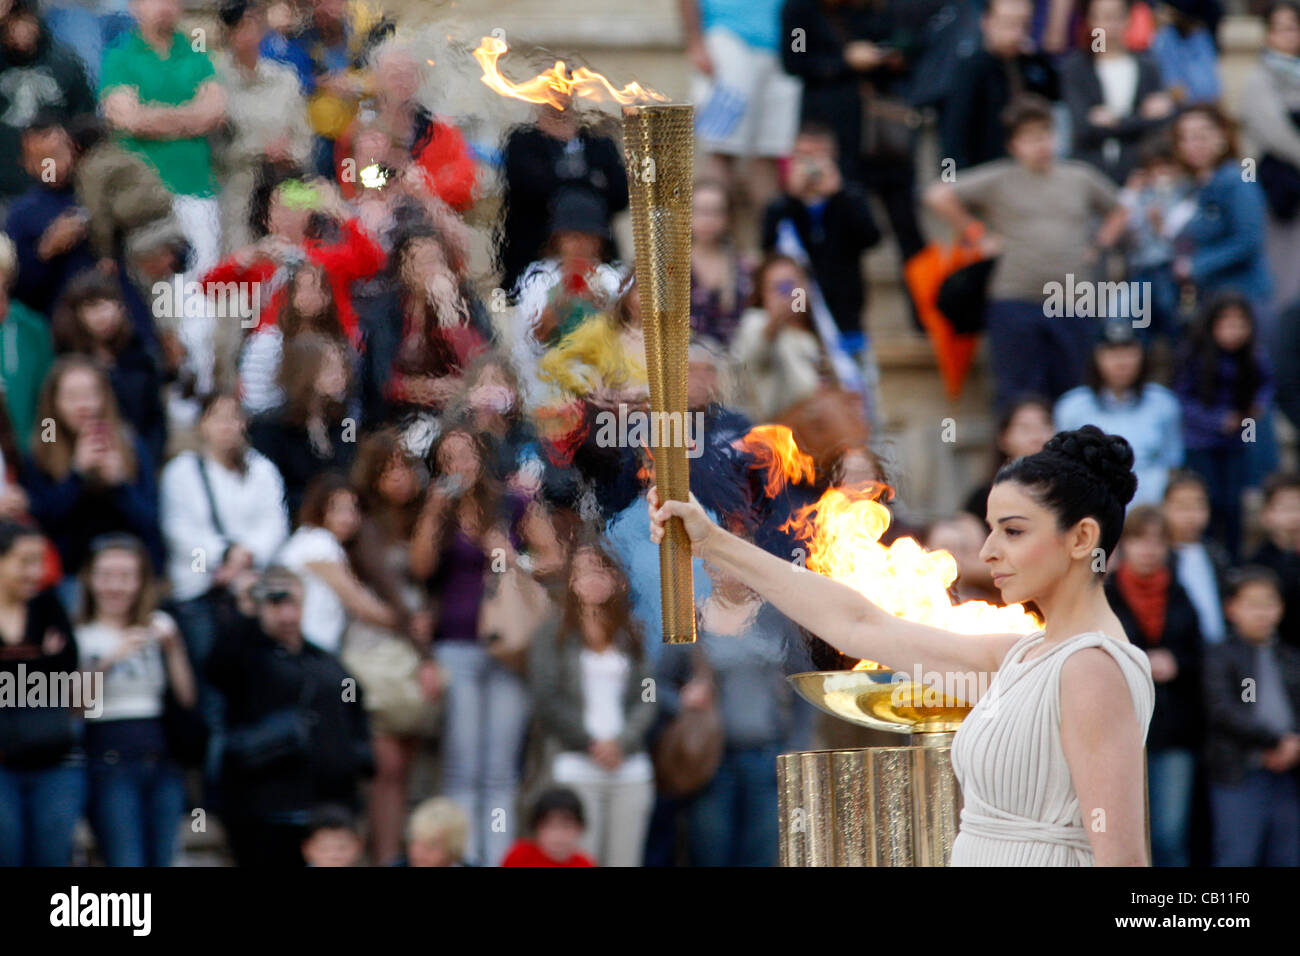 May 17 2012 Athens Greece. Actress INO MENEGAKI, dressed as a high priestess, lights the torch during the Olympic - Stock Image